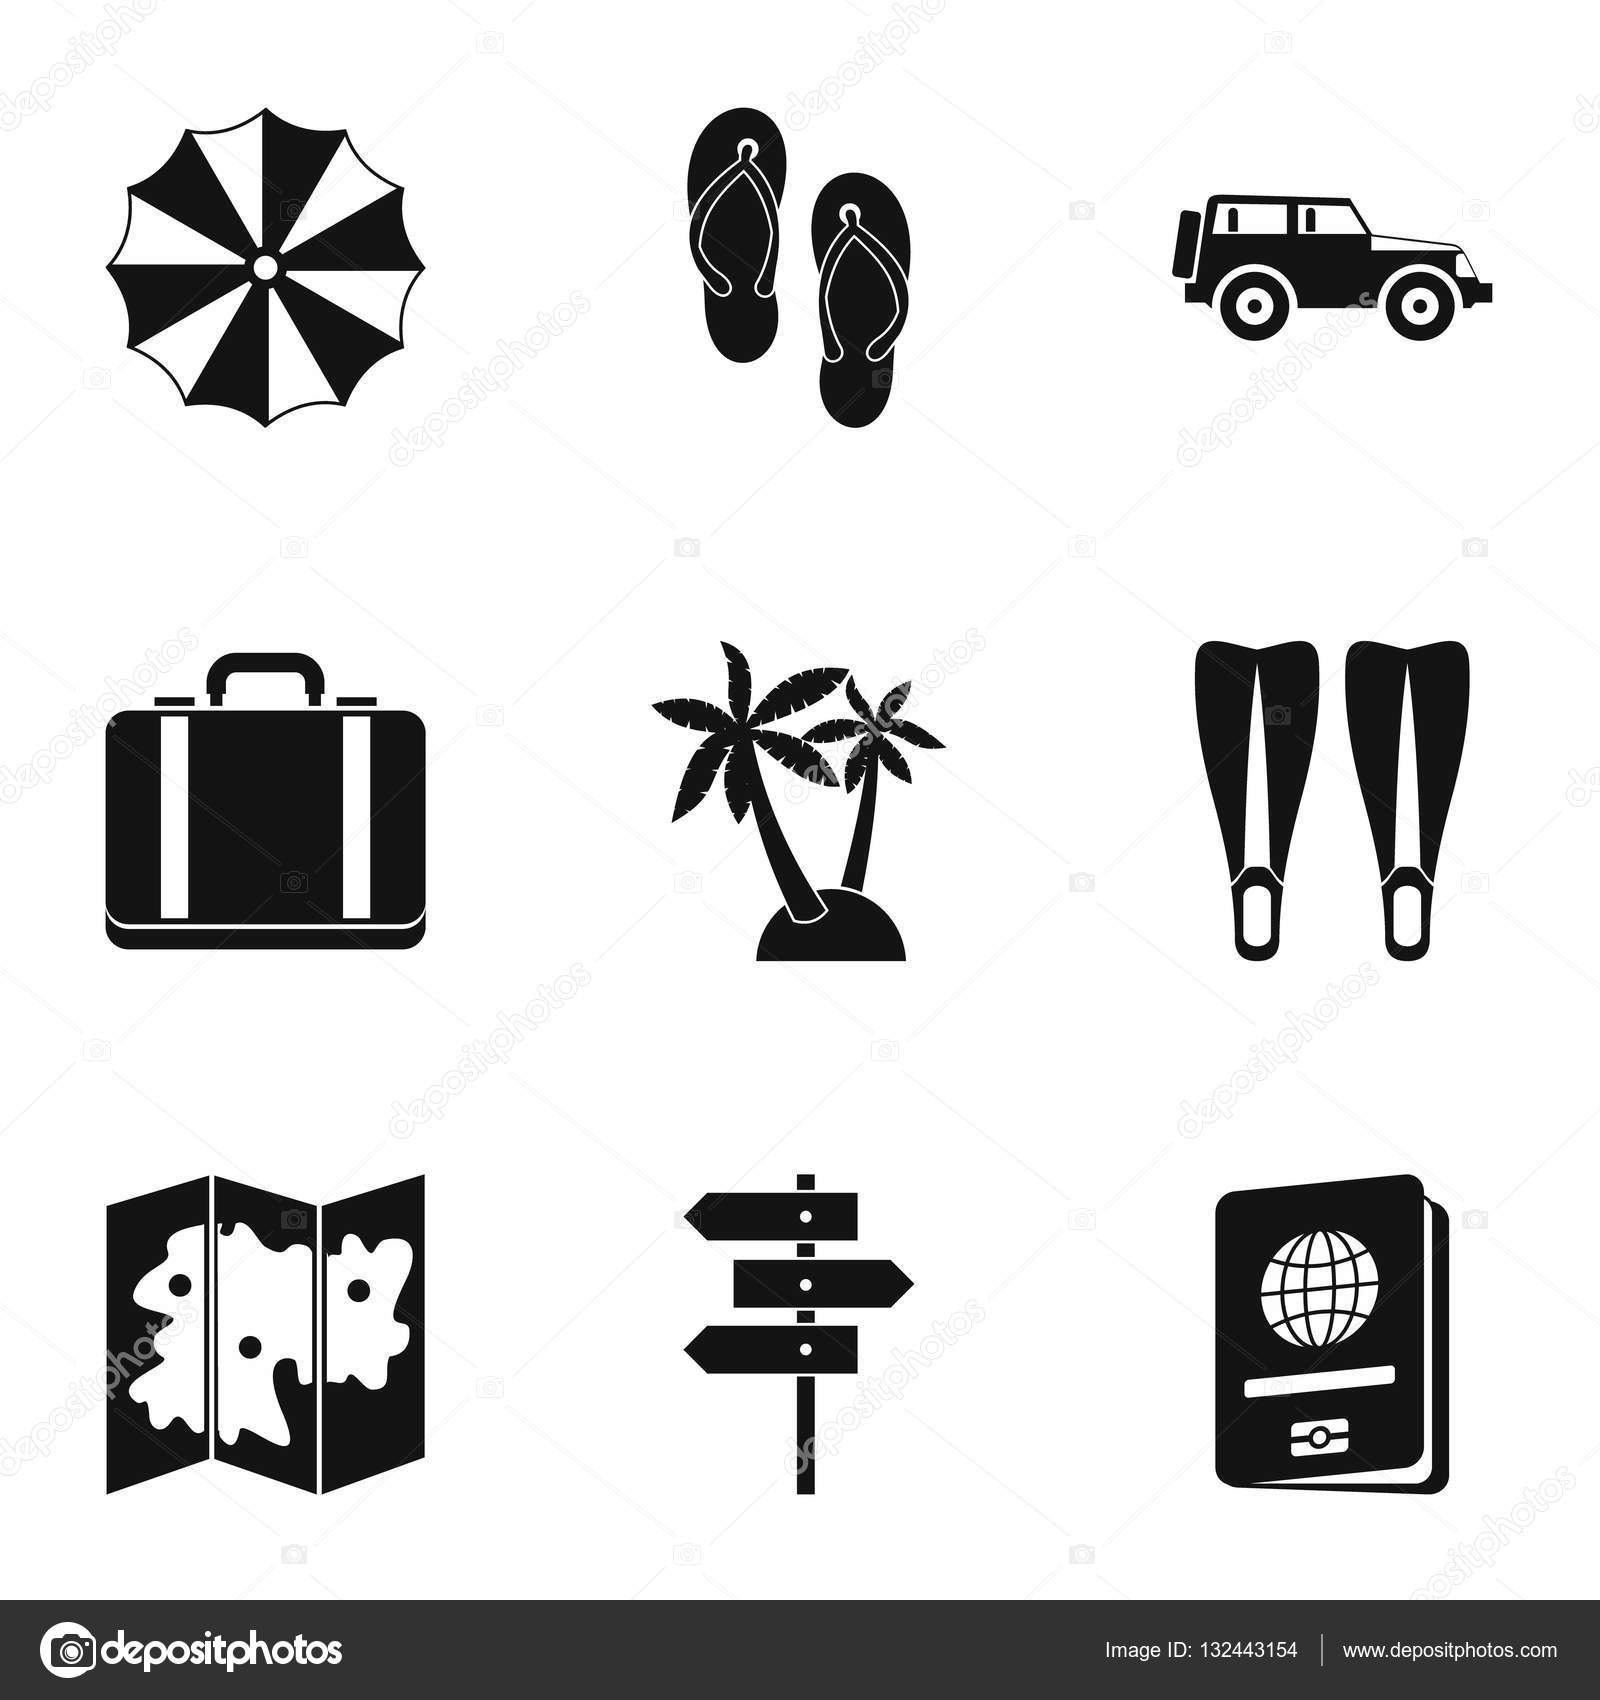 Travel to sea icons set simple style stock vector ylivdesign travel to sea icons set simple style stock vector biocorpaavc Choice Image